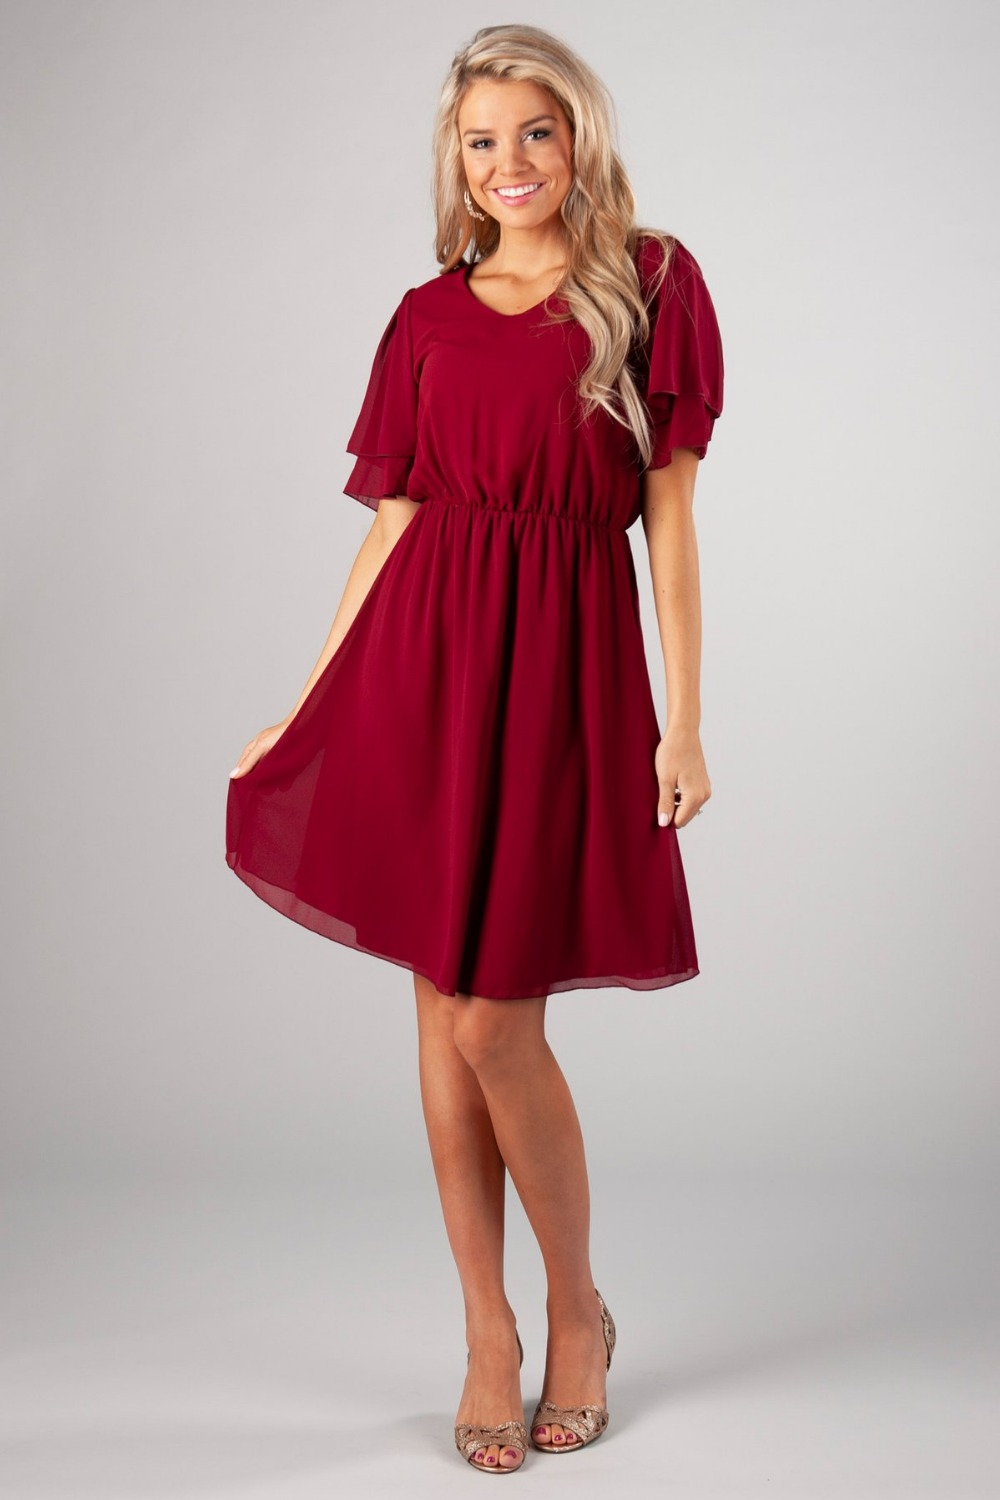 Dark Red Chiffon A-line Short Modest   Bridesmaid     Dresses   With Flutter Sleeves A-line Knee length Boho Informal   Bridesmaid   Gowns